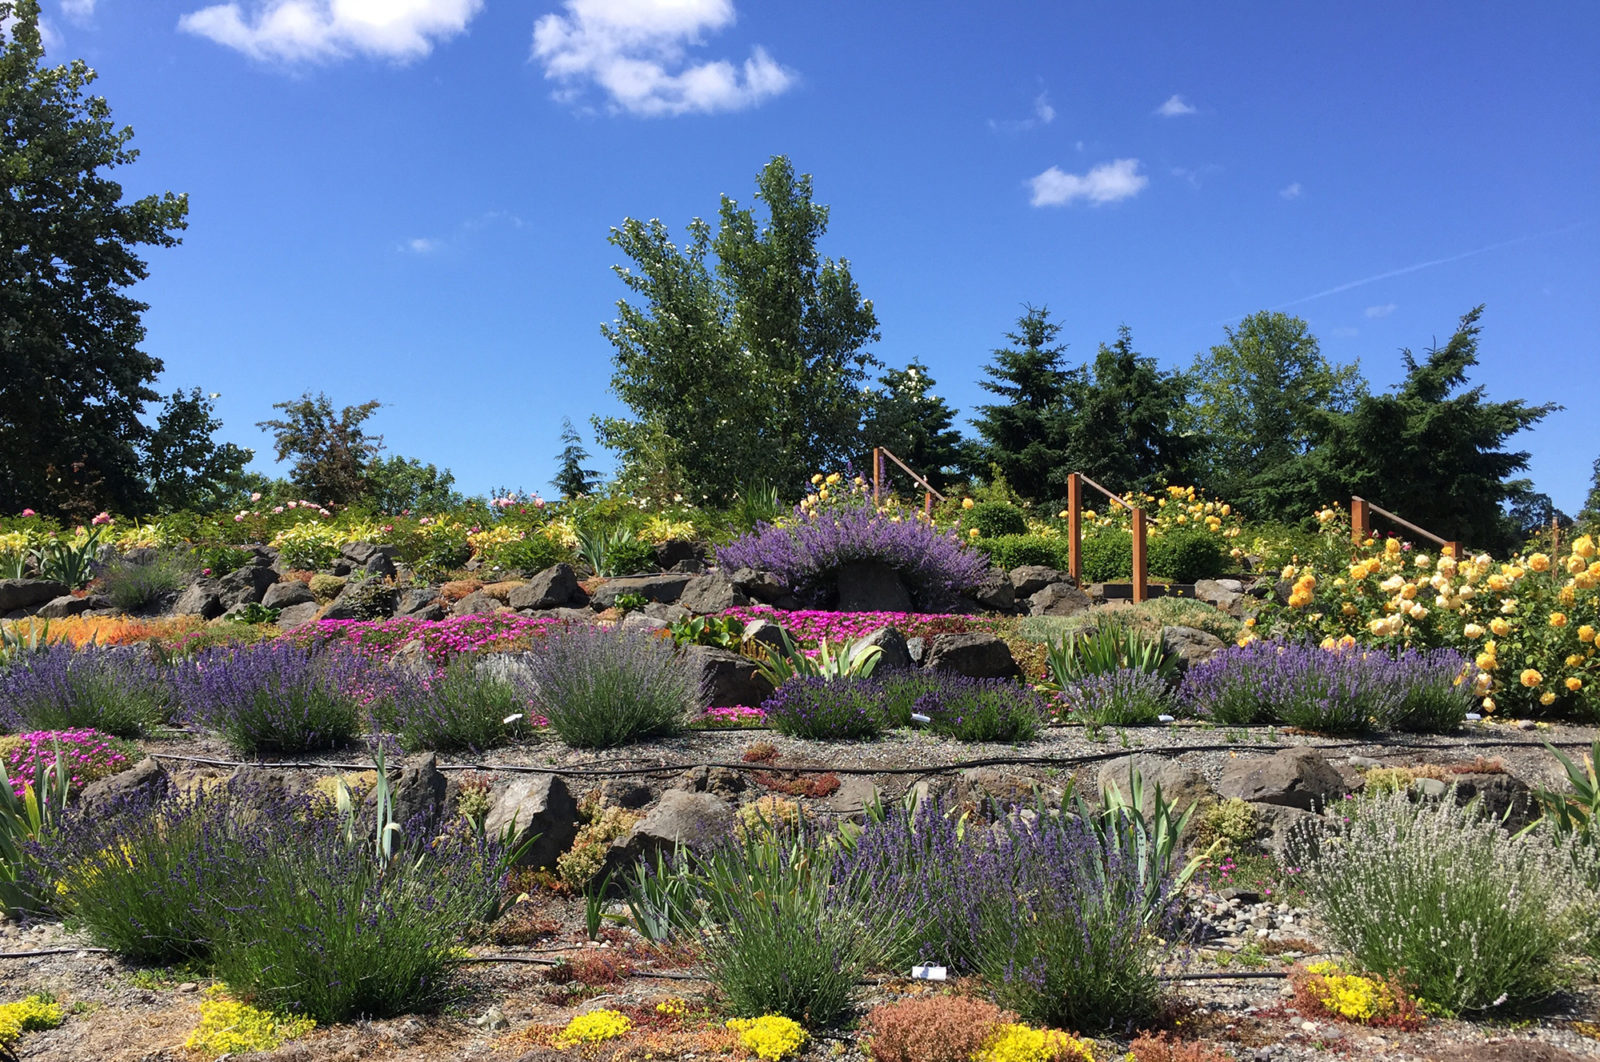 The Sequim Botanical Garden Terrace Garden by Renne Emiko Brock